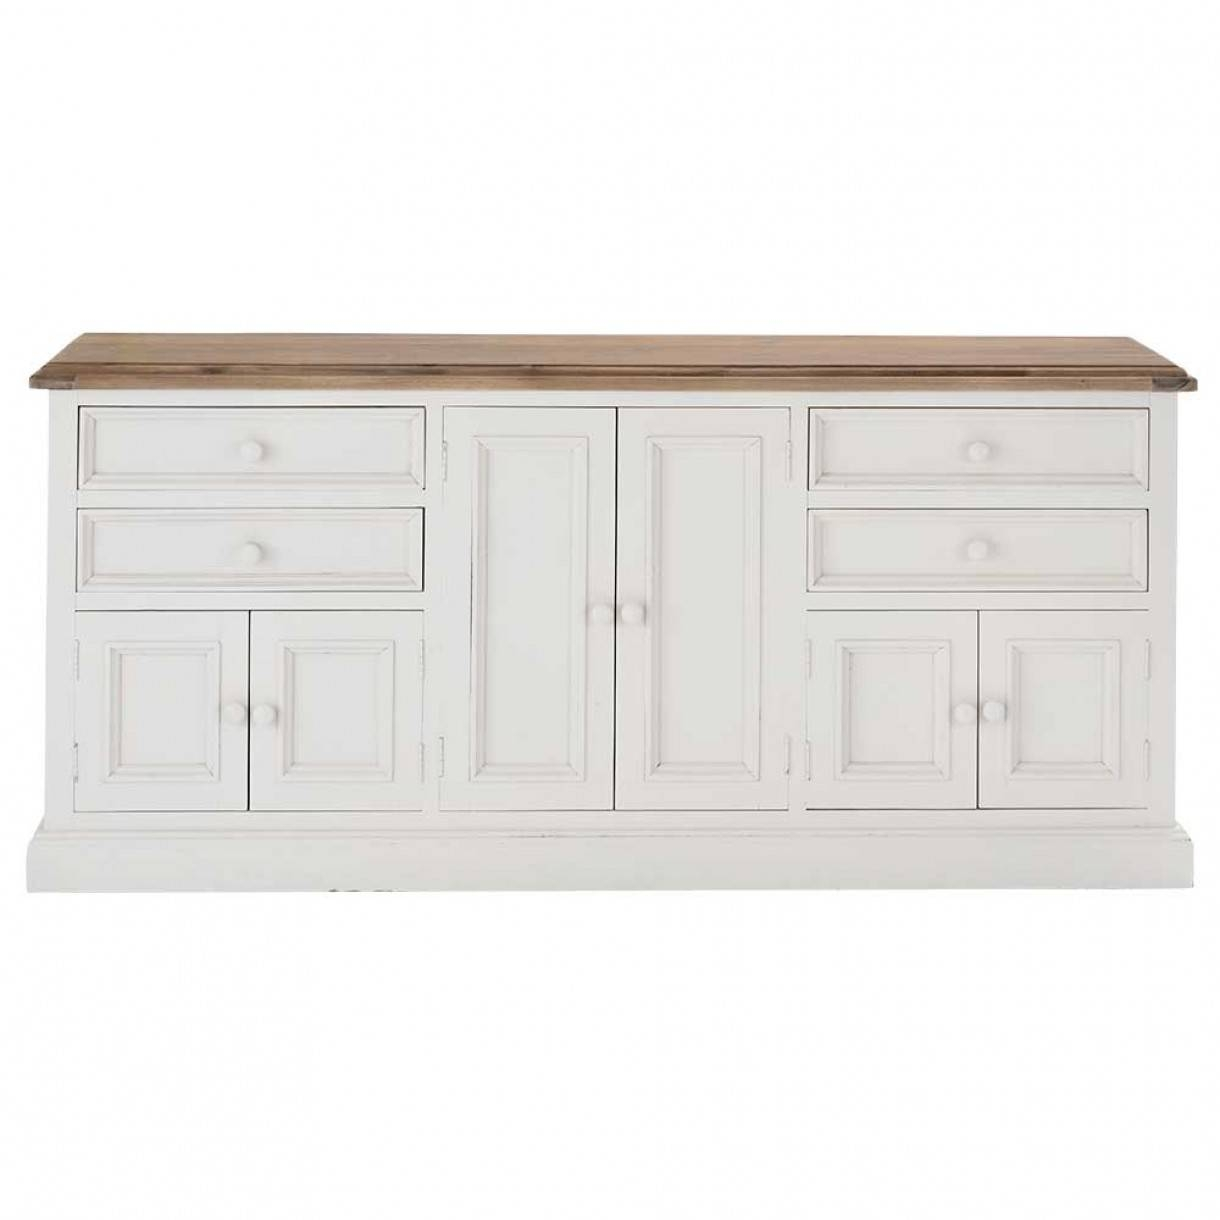 Buy Buffets And Sideboards Online | Dining | Early Settler Furniture For Large White Sideboards (#4 of 15)